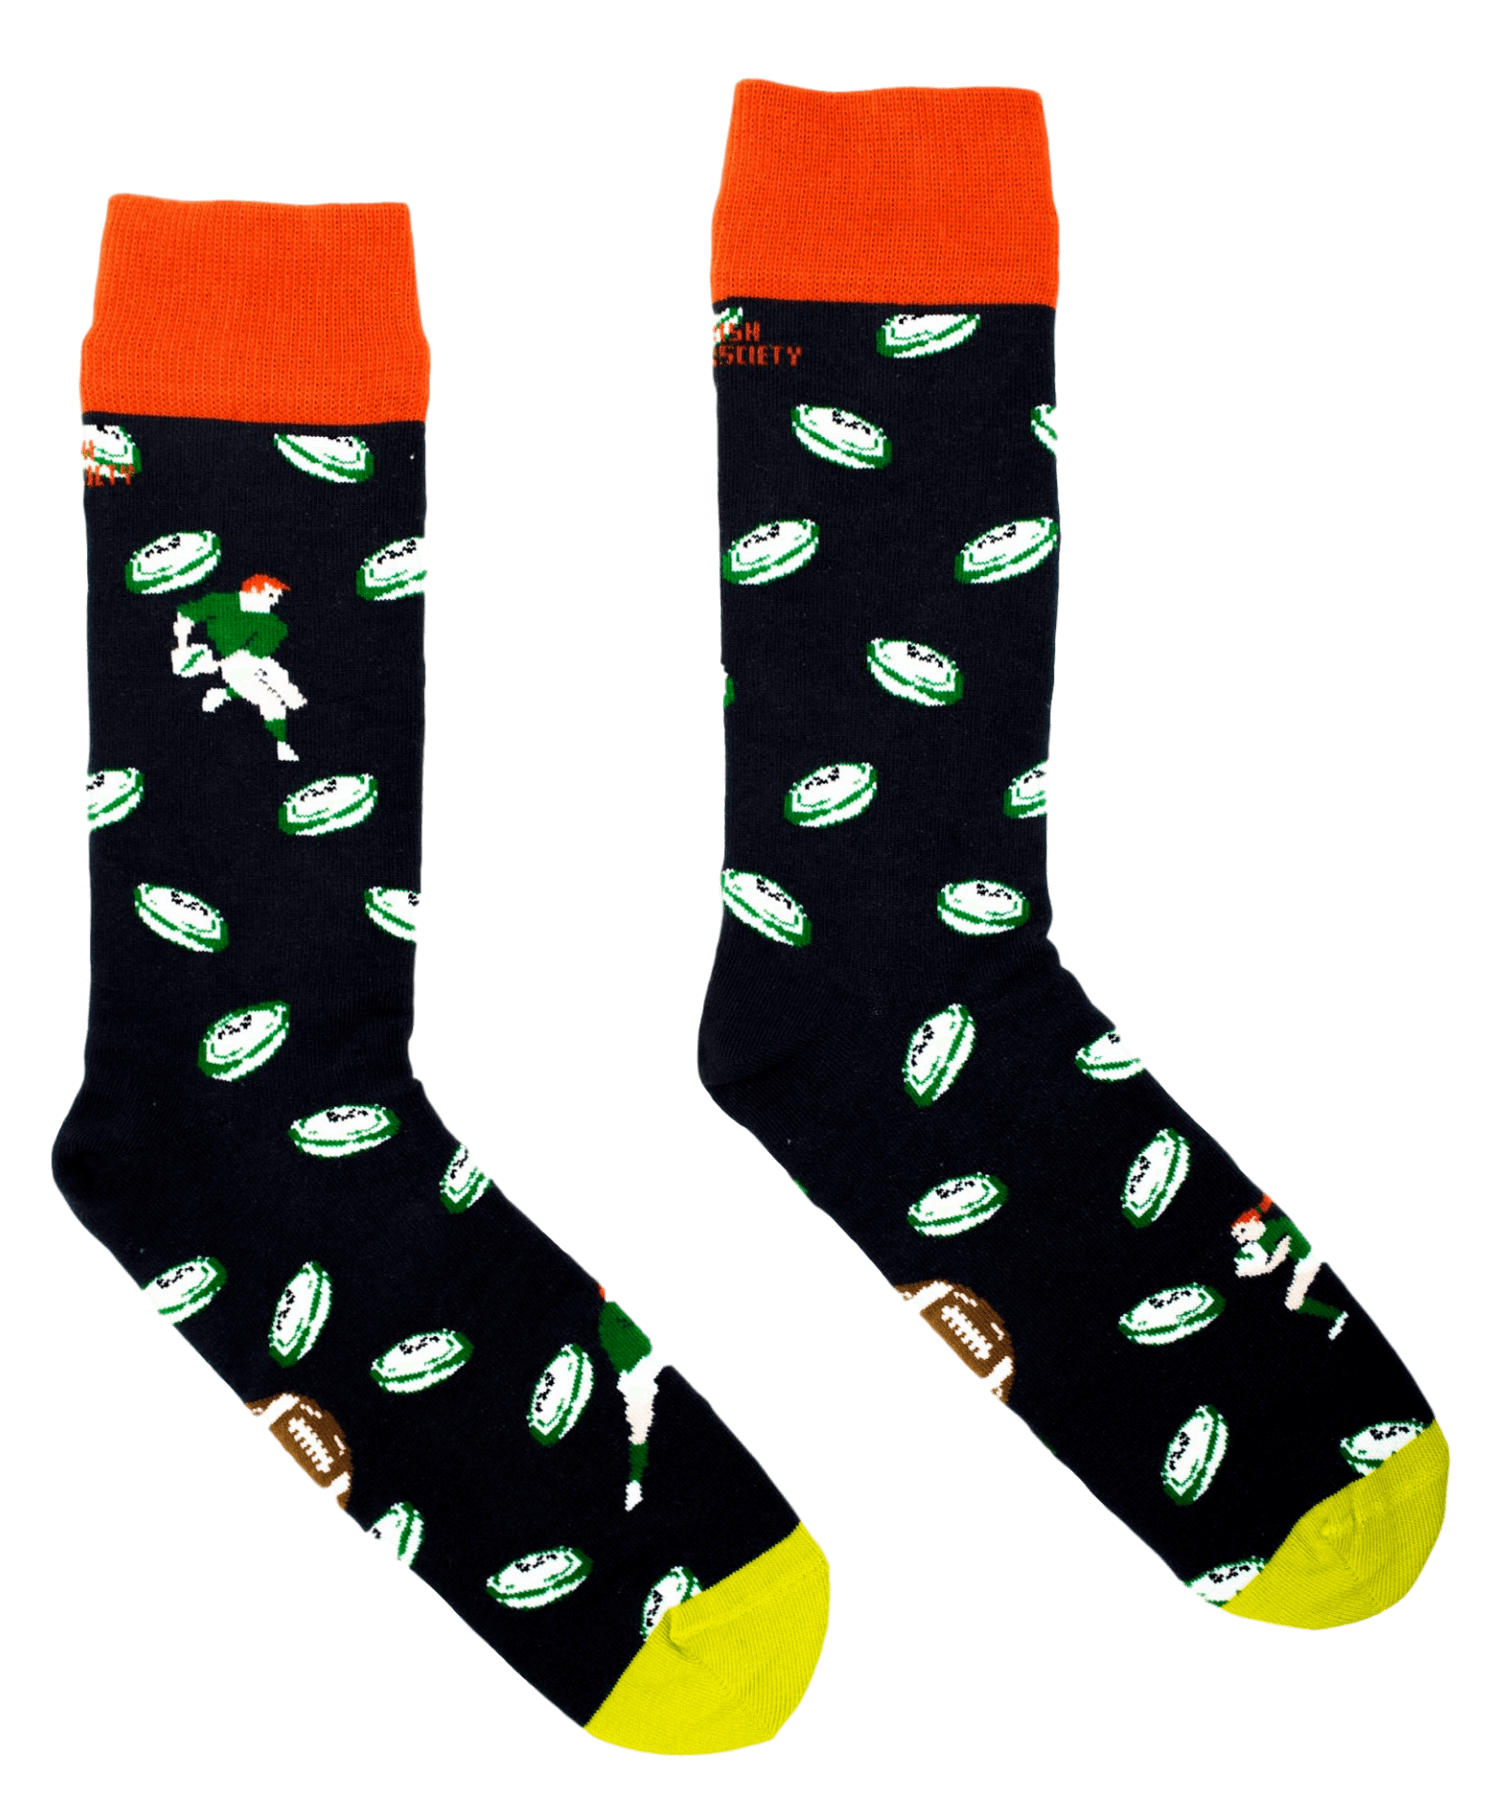 Socks - G'wan Rugby - [Irish Socksciety] - Socks & Slippers - Irish Gifts